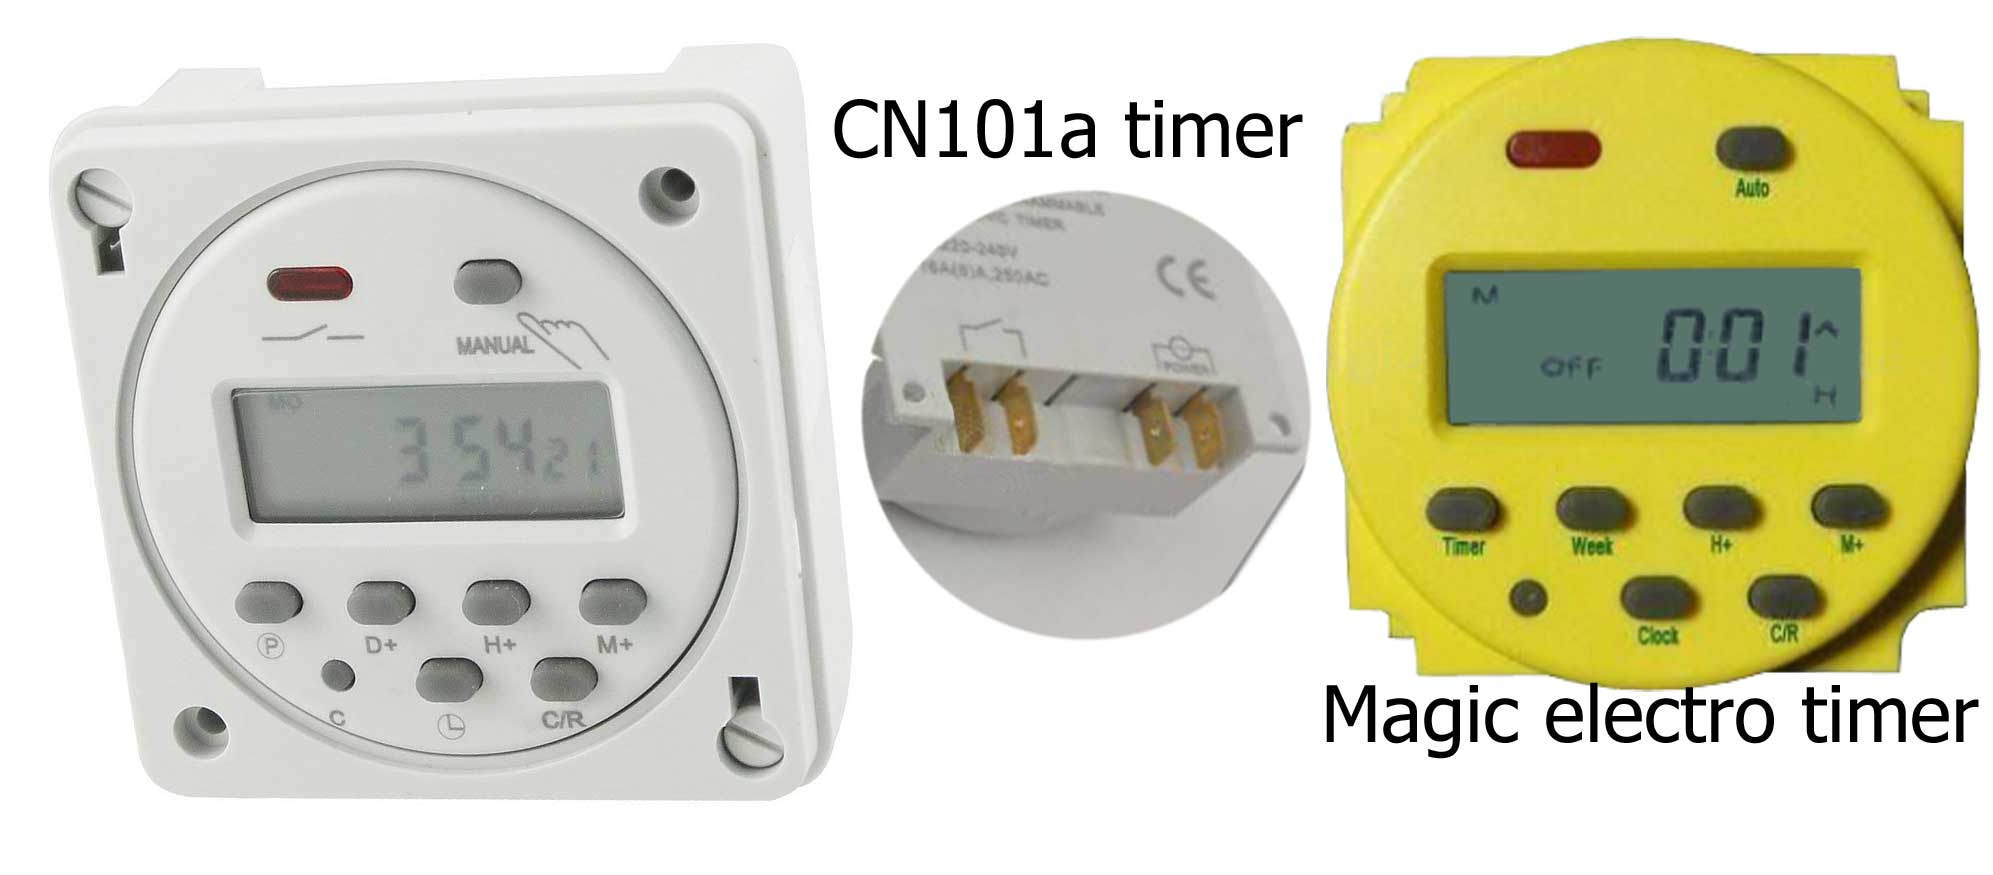 CN101a timer large override thermostat using programmable timer cn101a timer wiring diagram at gsmportal.co